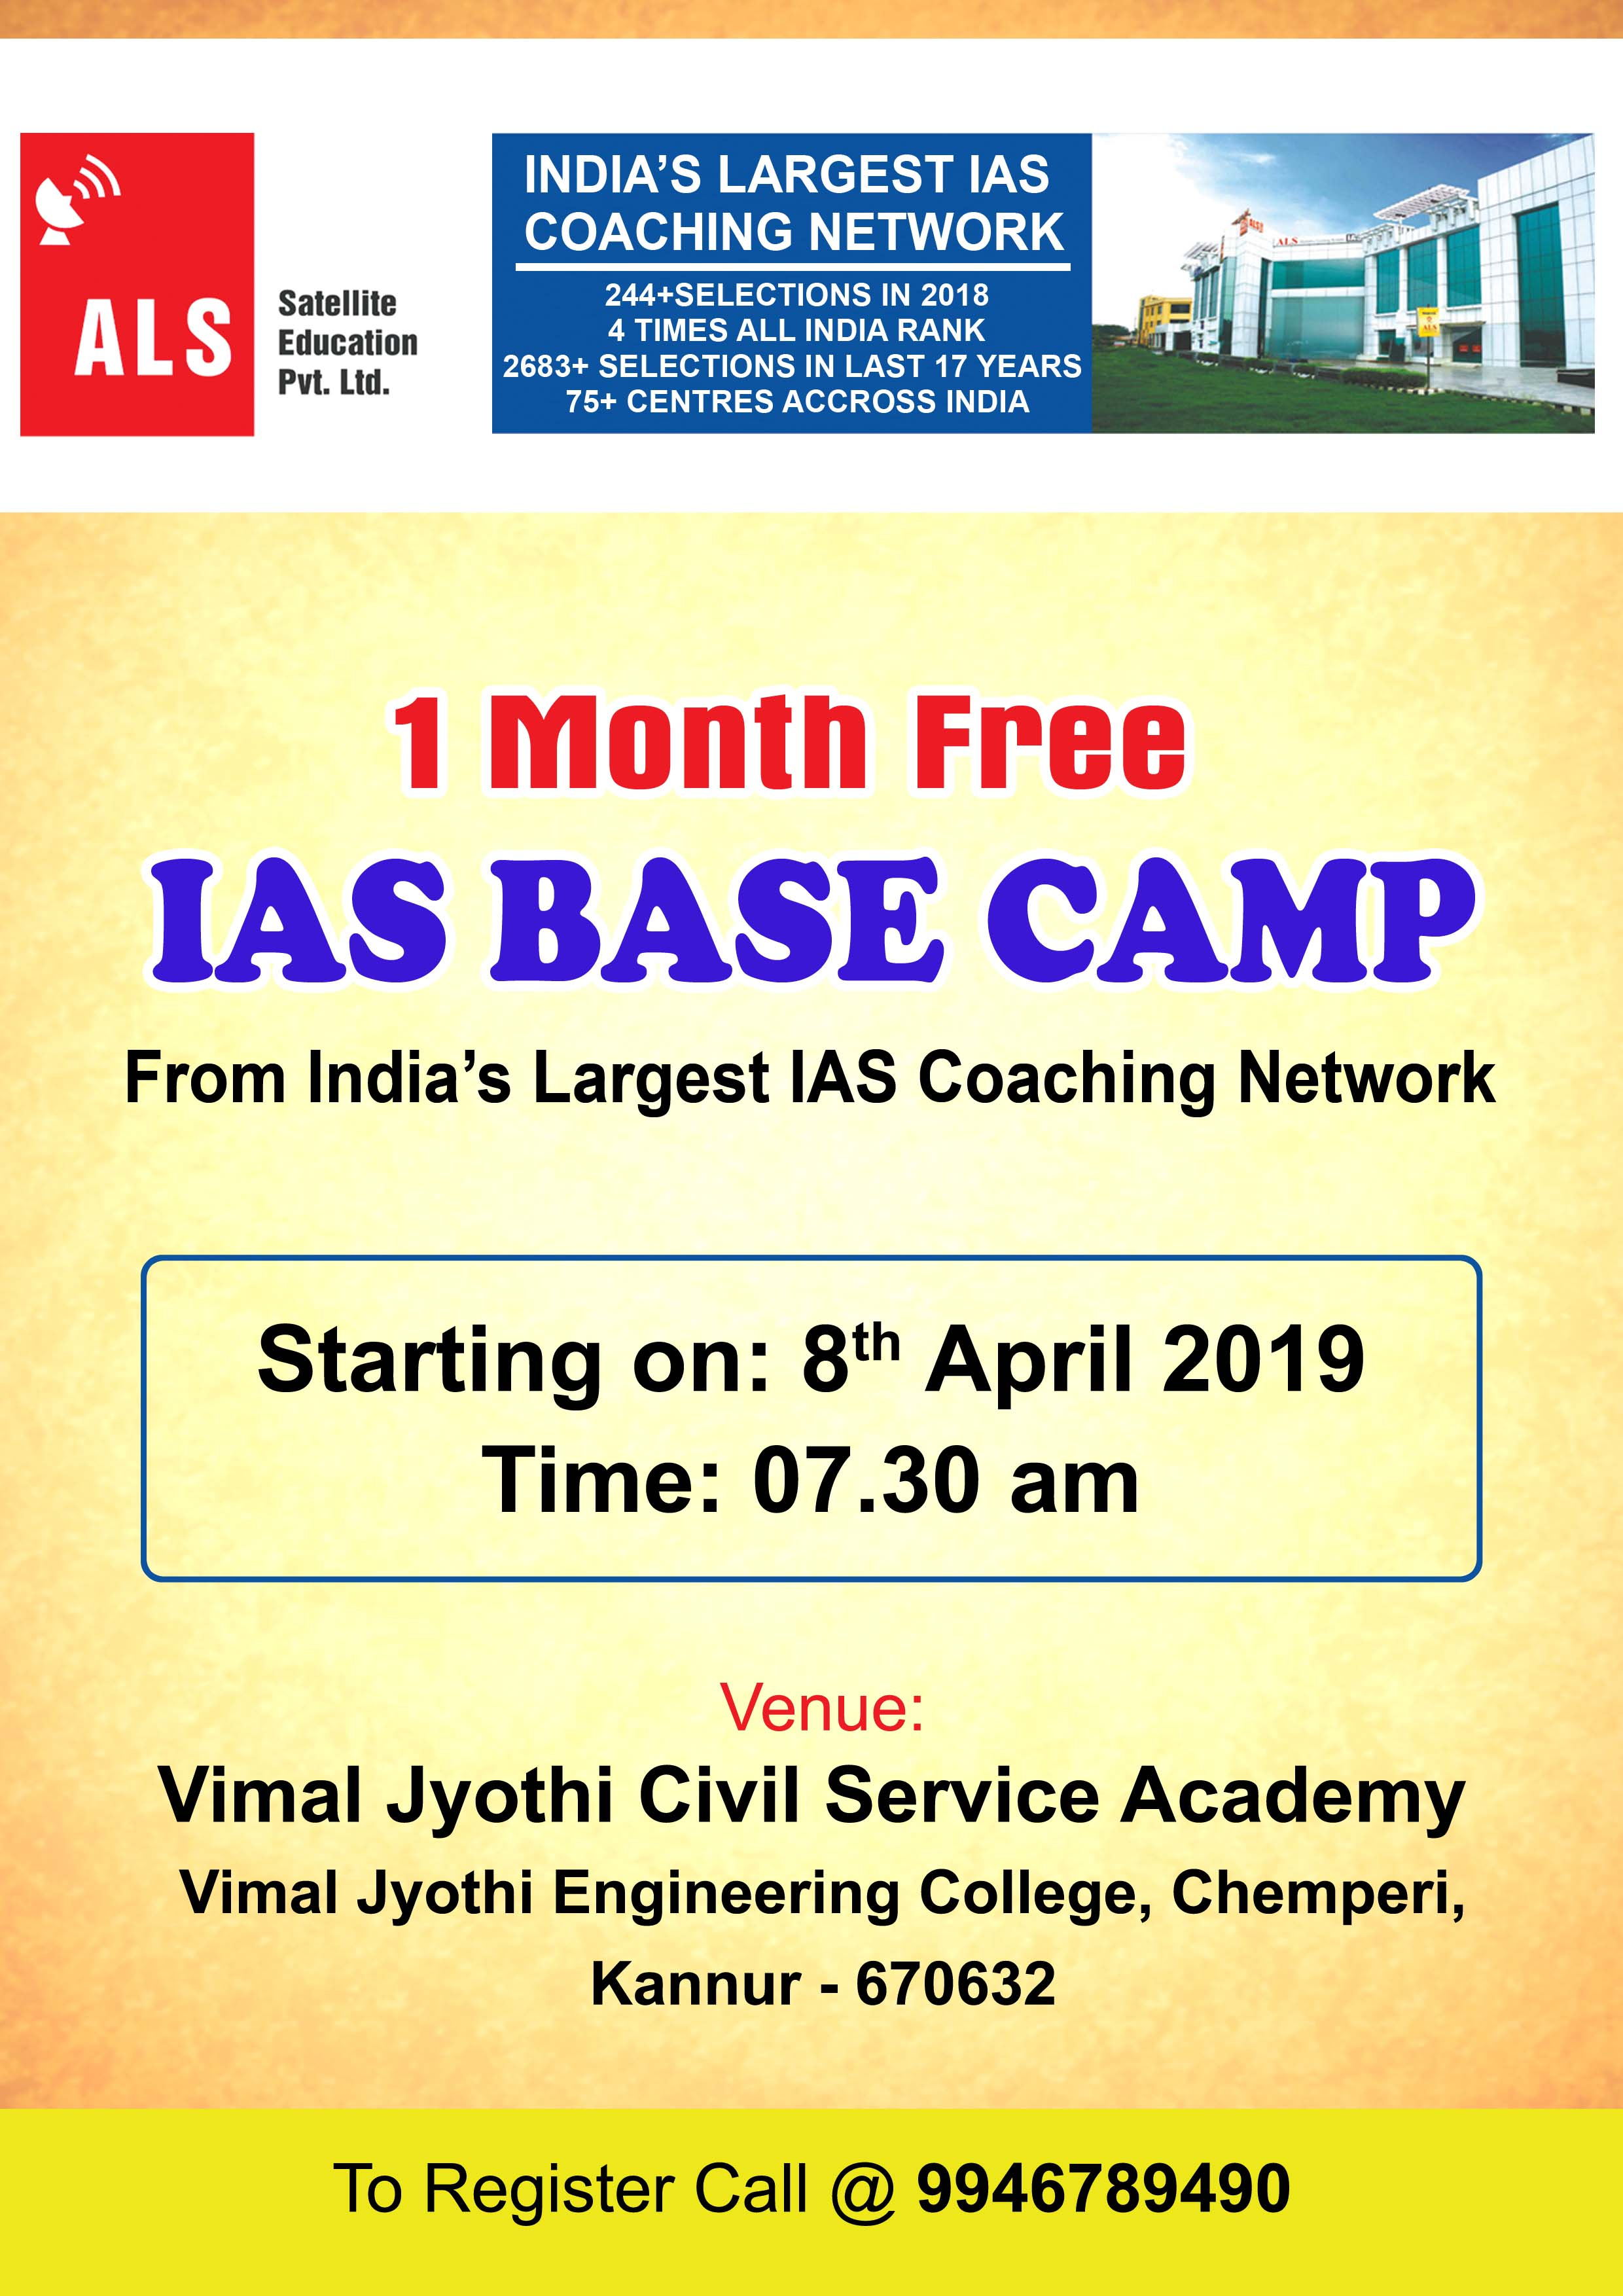 IAS FREE BASE CAMP -starting on 8th April